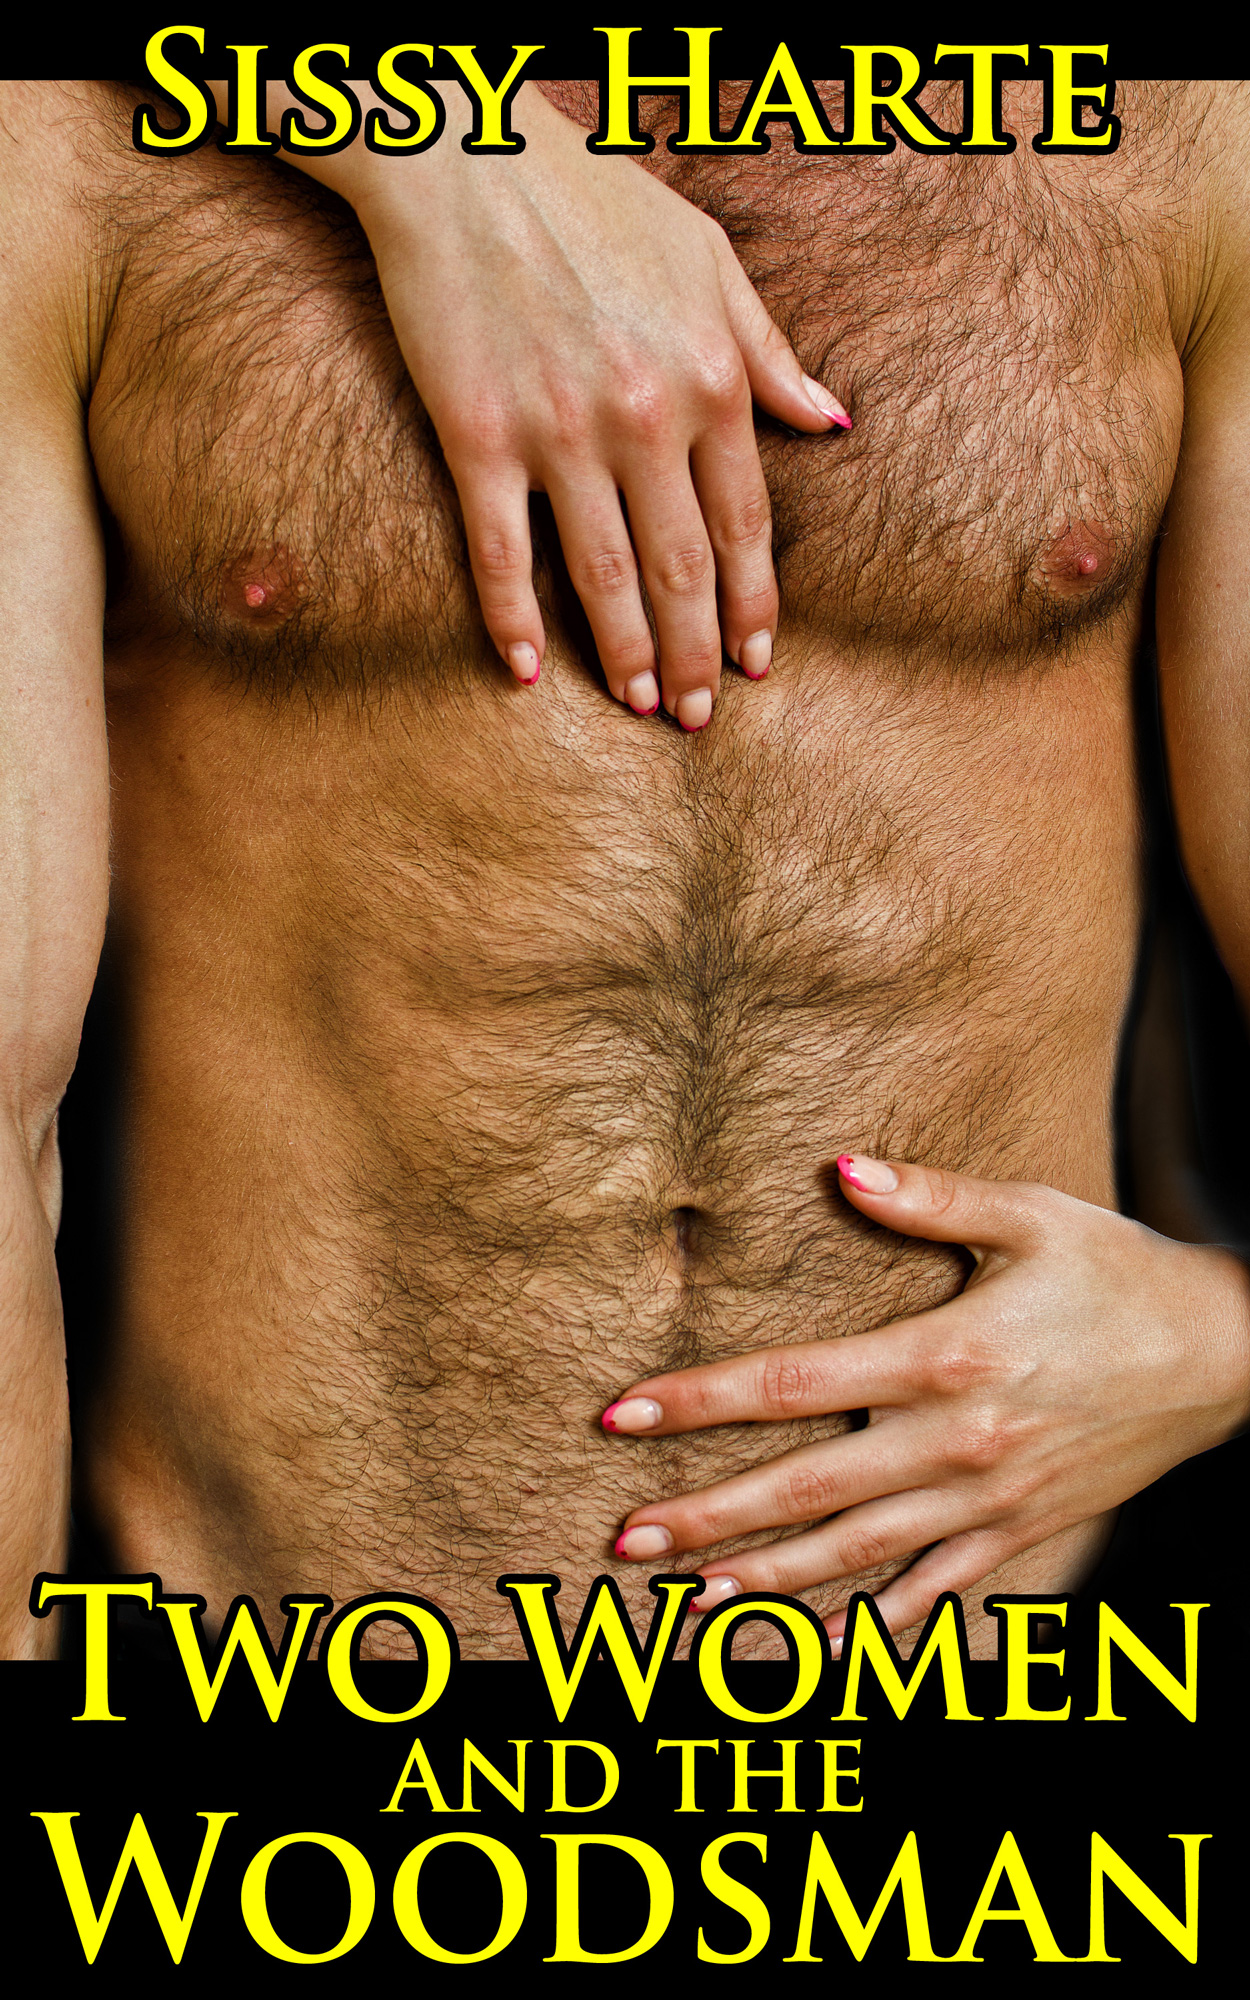 Sissy Harte - Two Women and the Woodsman